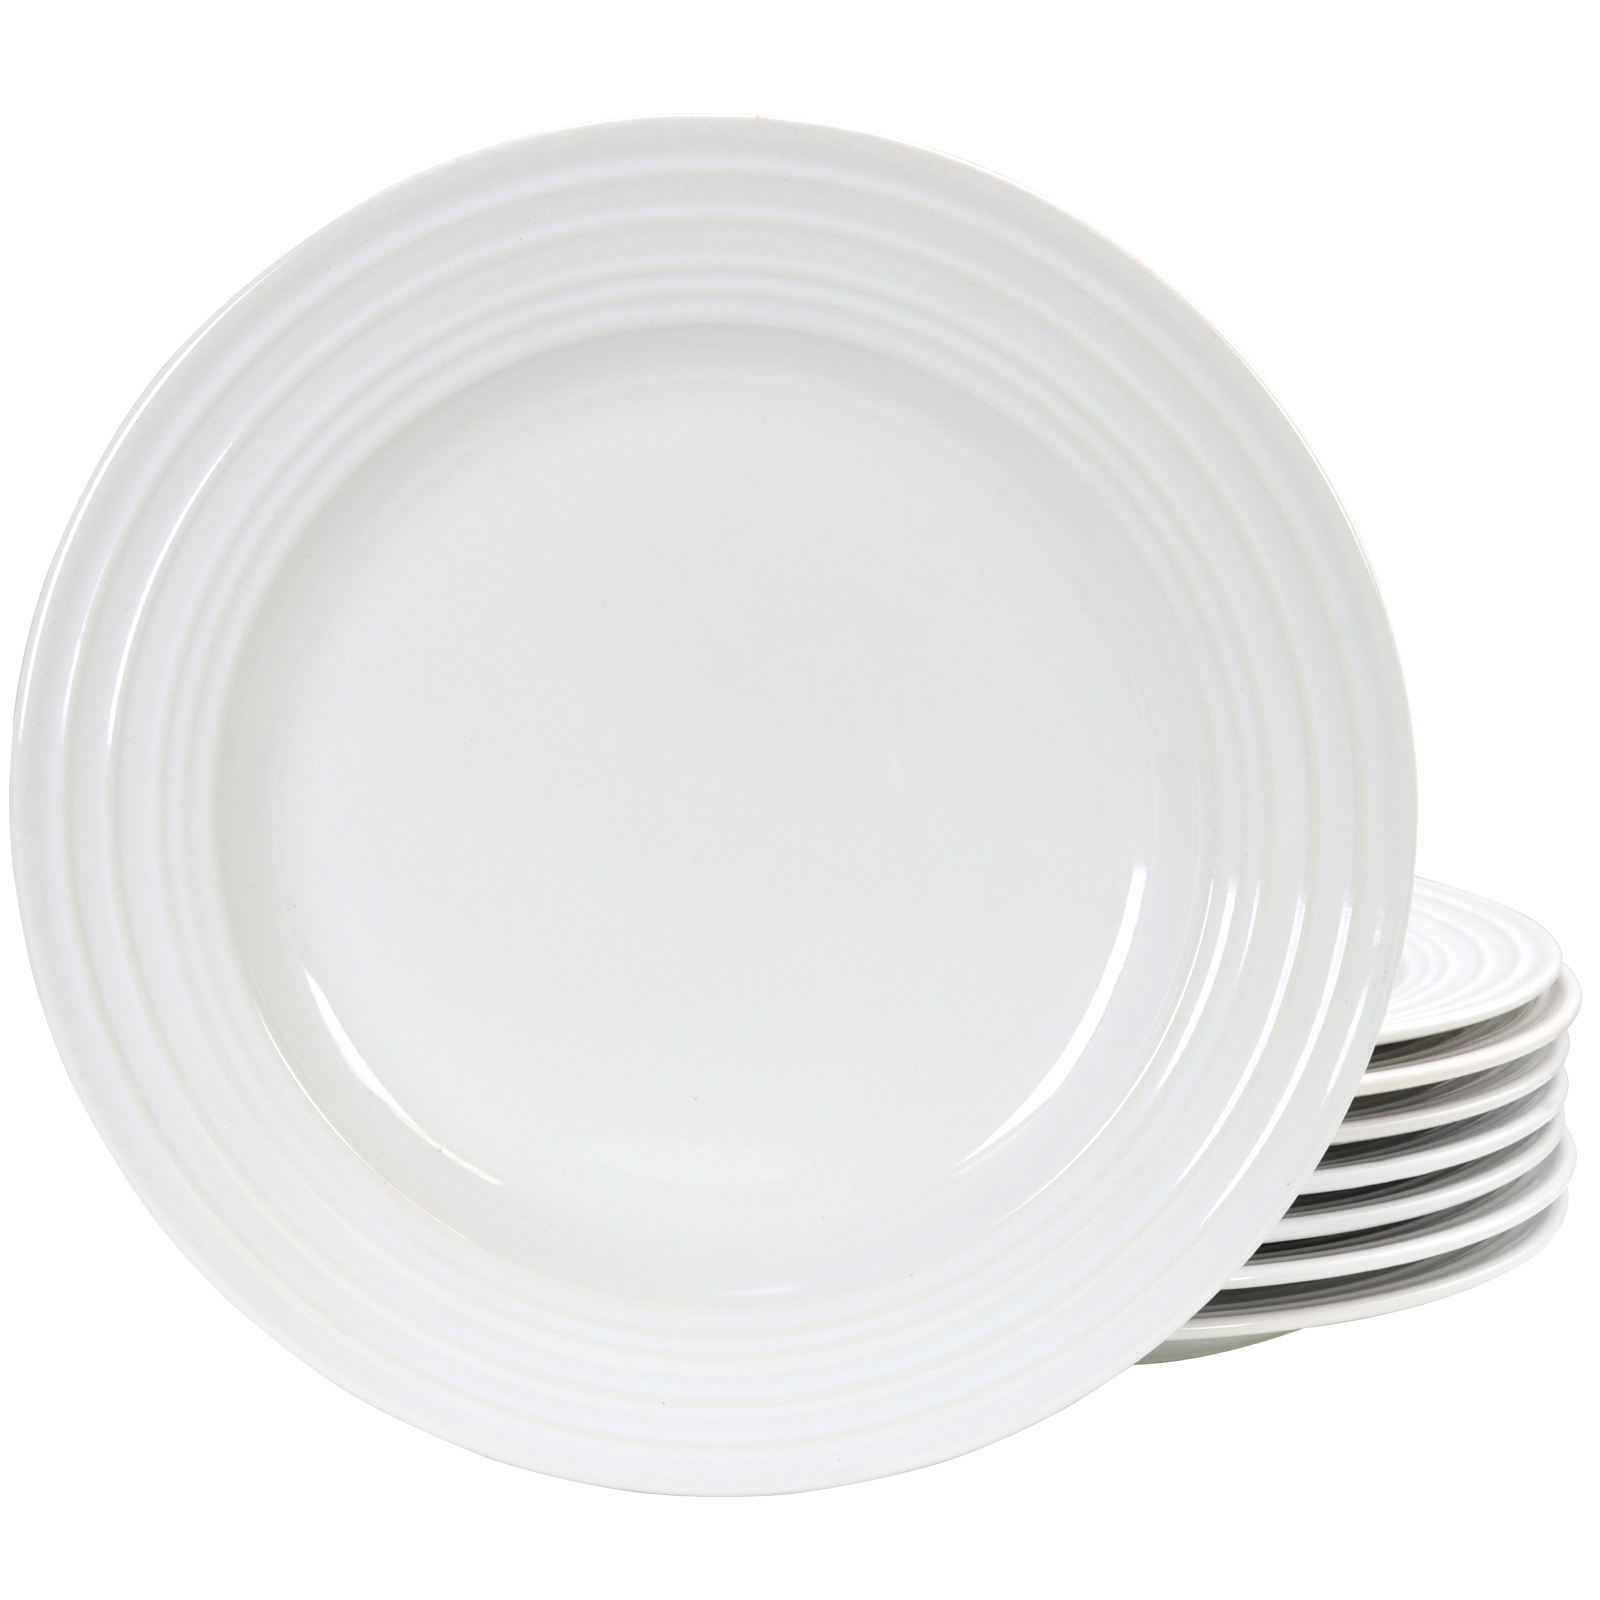 "Gibson Home Plaza Cafe 10.5"" White Stoneware Dinner Plate, Set of 8"